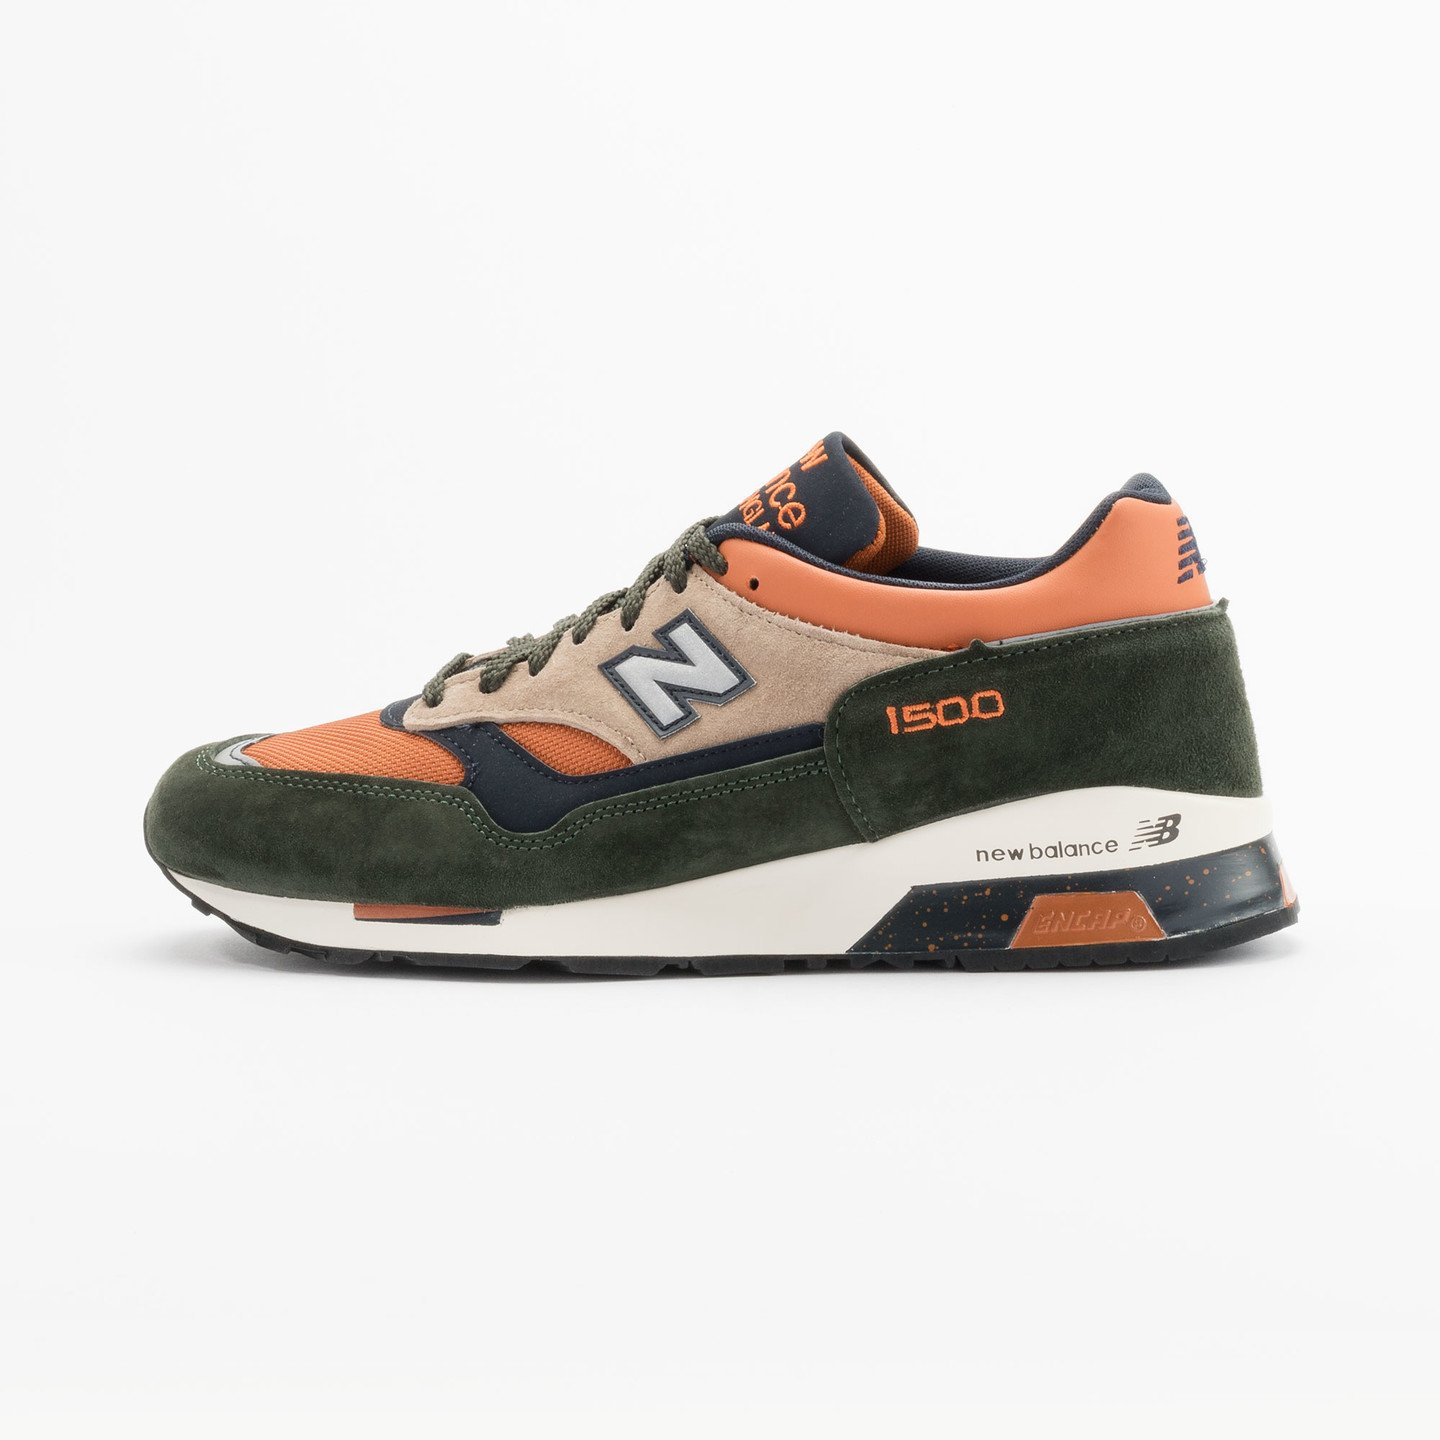 New Balance M1500 RO - Made in England Green / Orange M1500RO-42.5